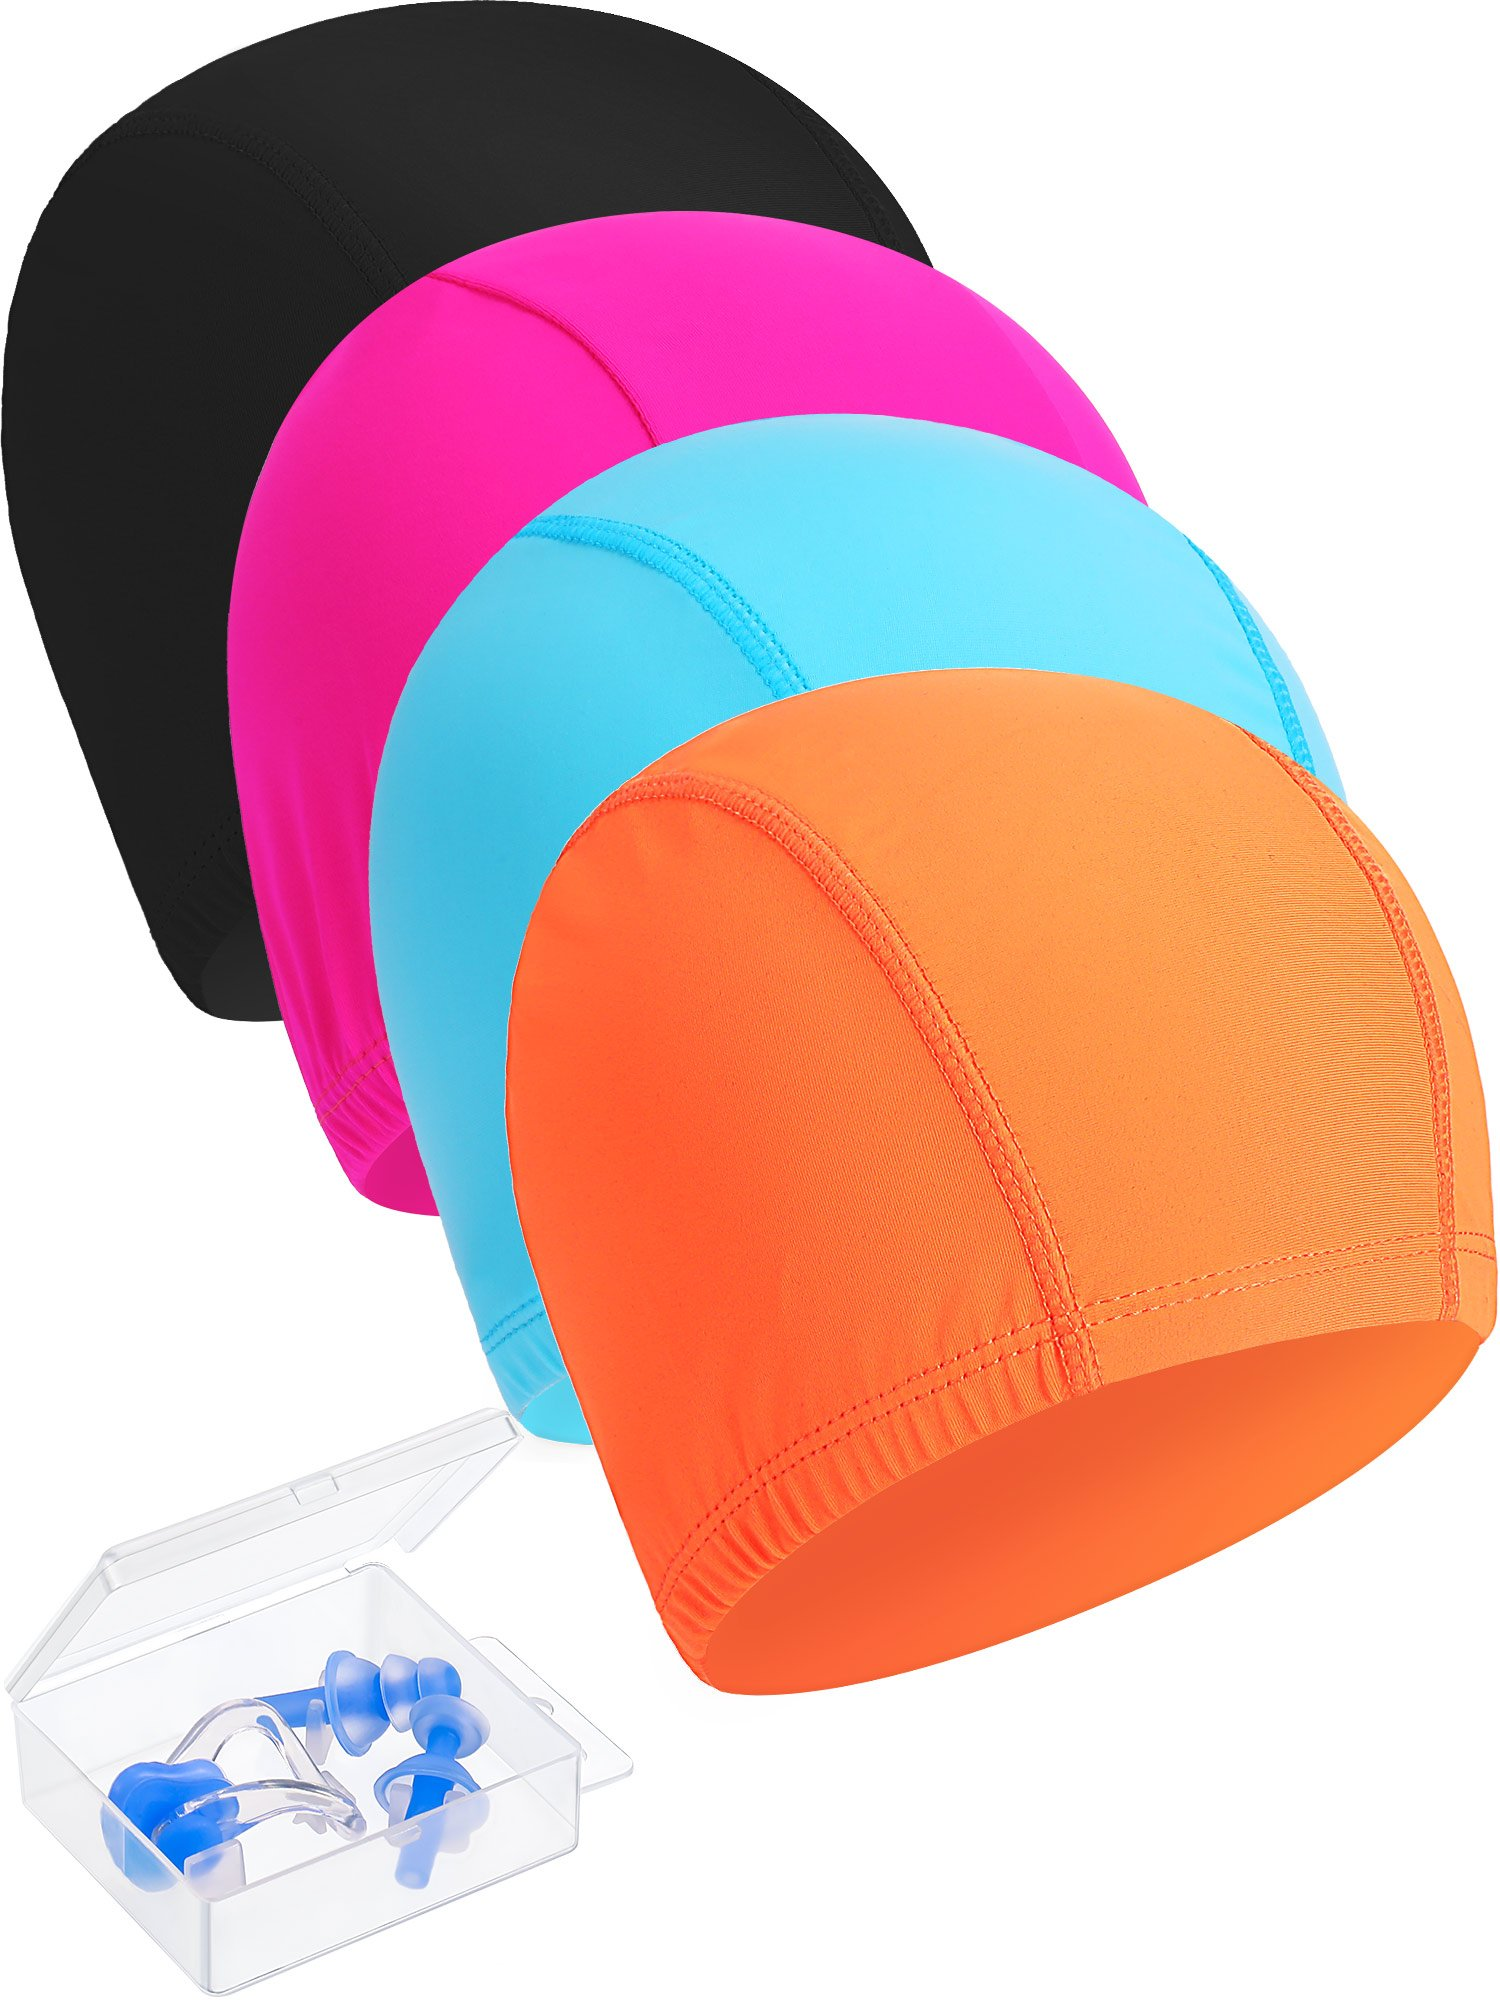 Maxdot 4 Pieces Swimming Caps, Come with 1 Nose Clip and 2 Ear Plug, Durable Elastic Long Hair Swim Caps for Kids, Women, Men